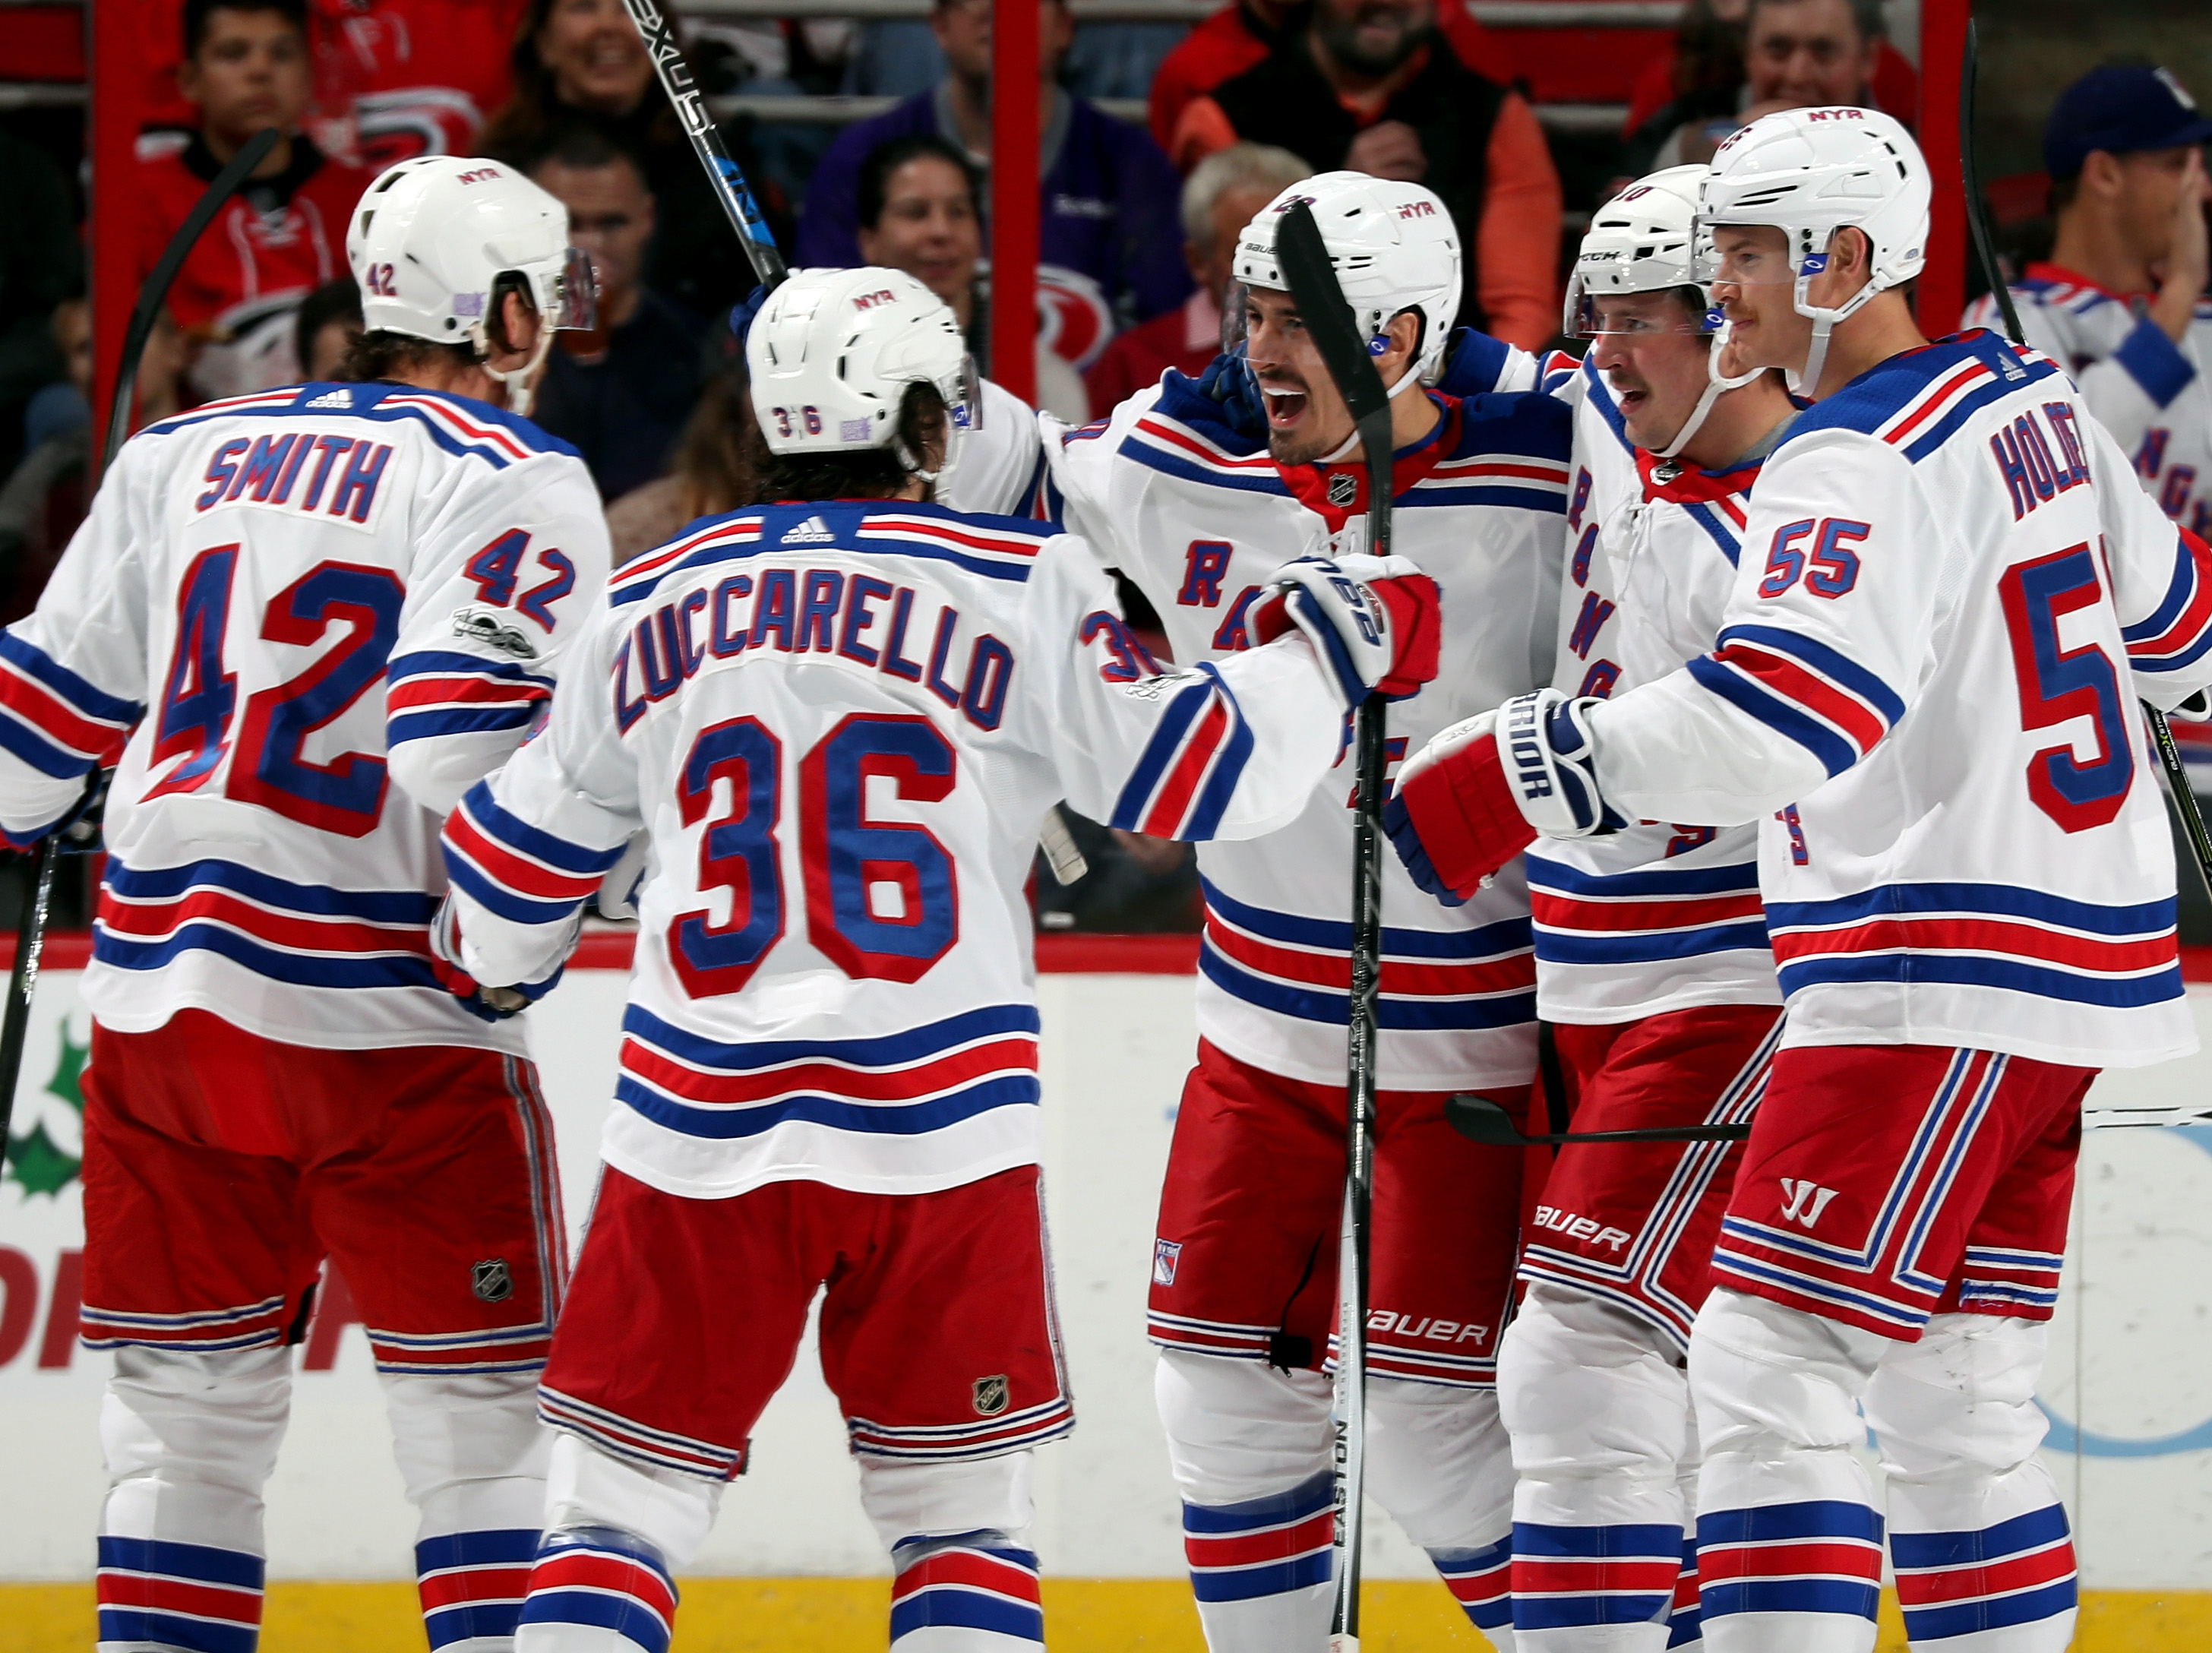 Gold: Canes a no-show in 6-1 loss to Rangers